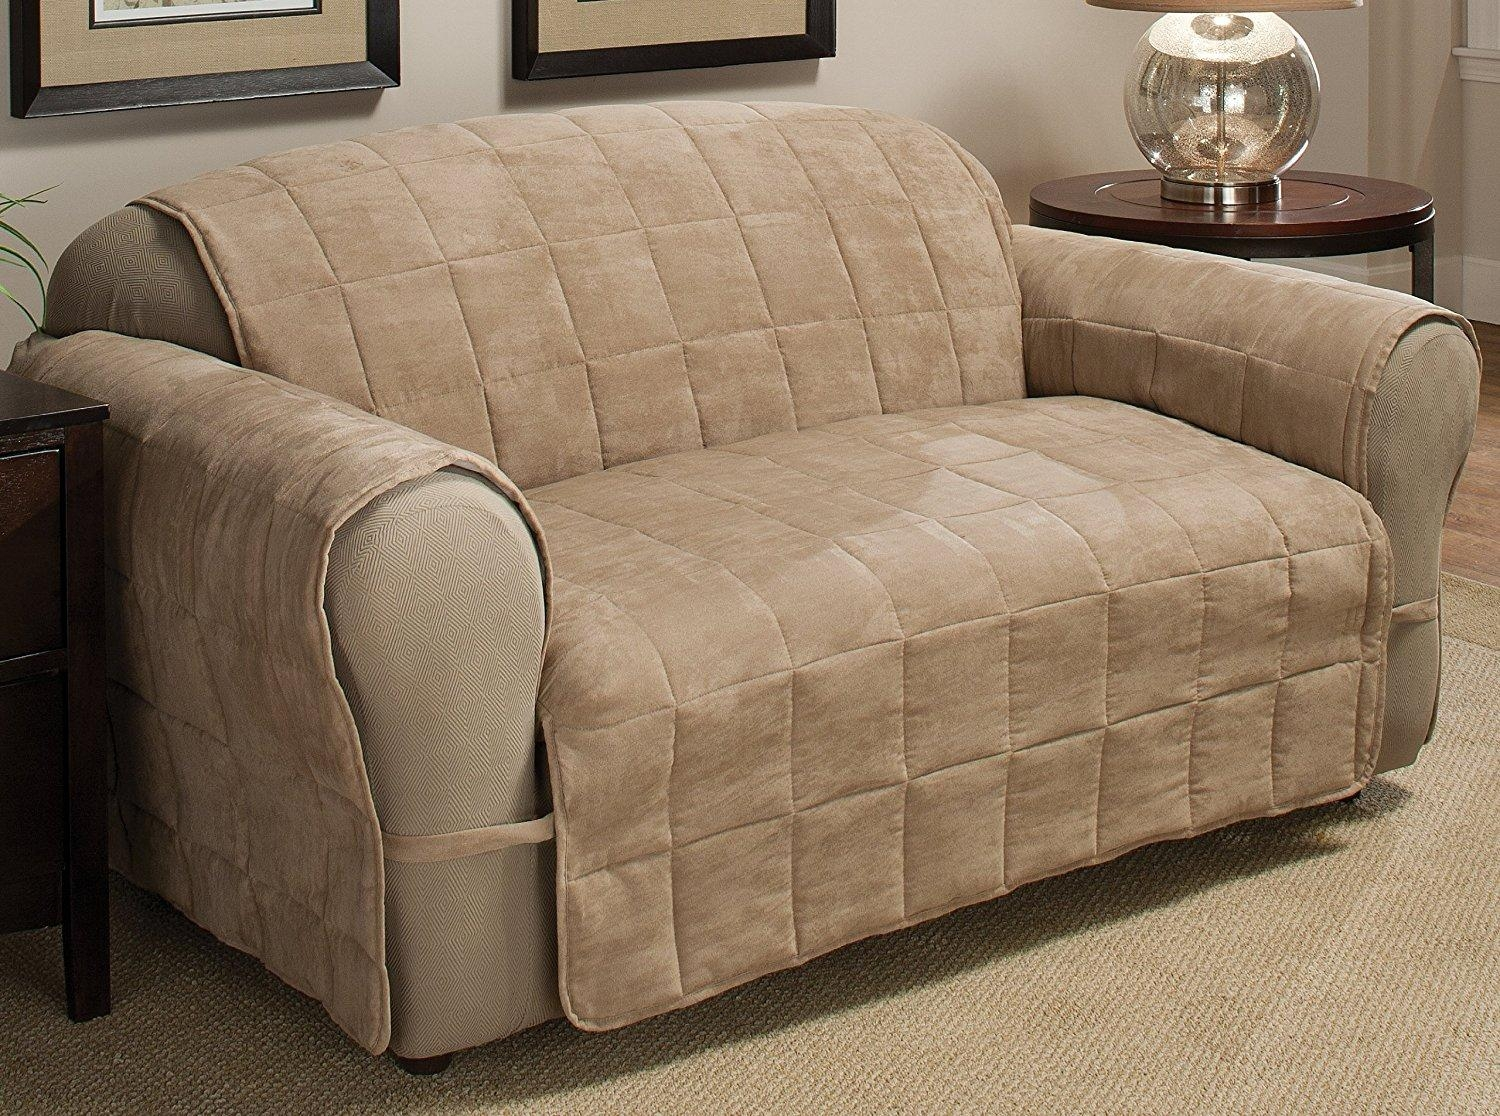 Furniture: Couch Slip Cover | Sofa Slipcover | Recliner Chair Covers Pertaining To Slipcover For Leather Sofas (Image 14 of 20)